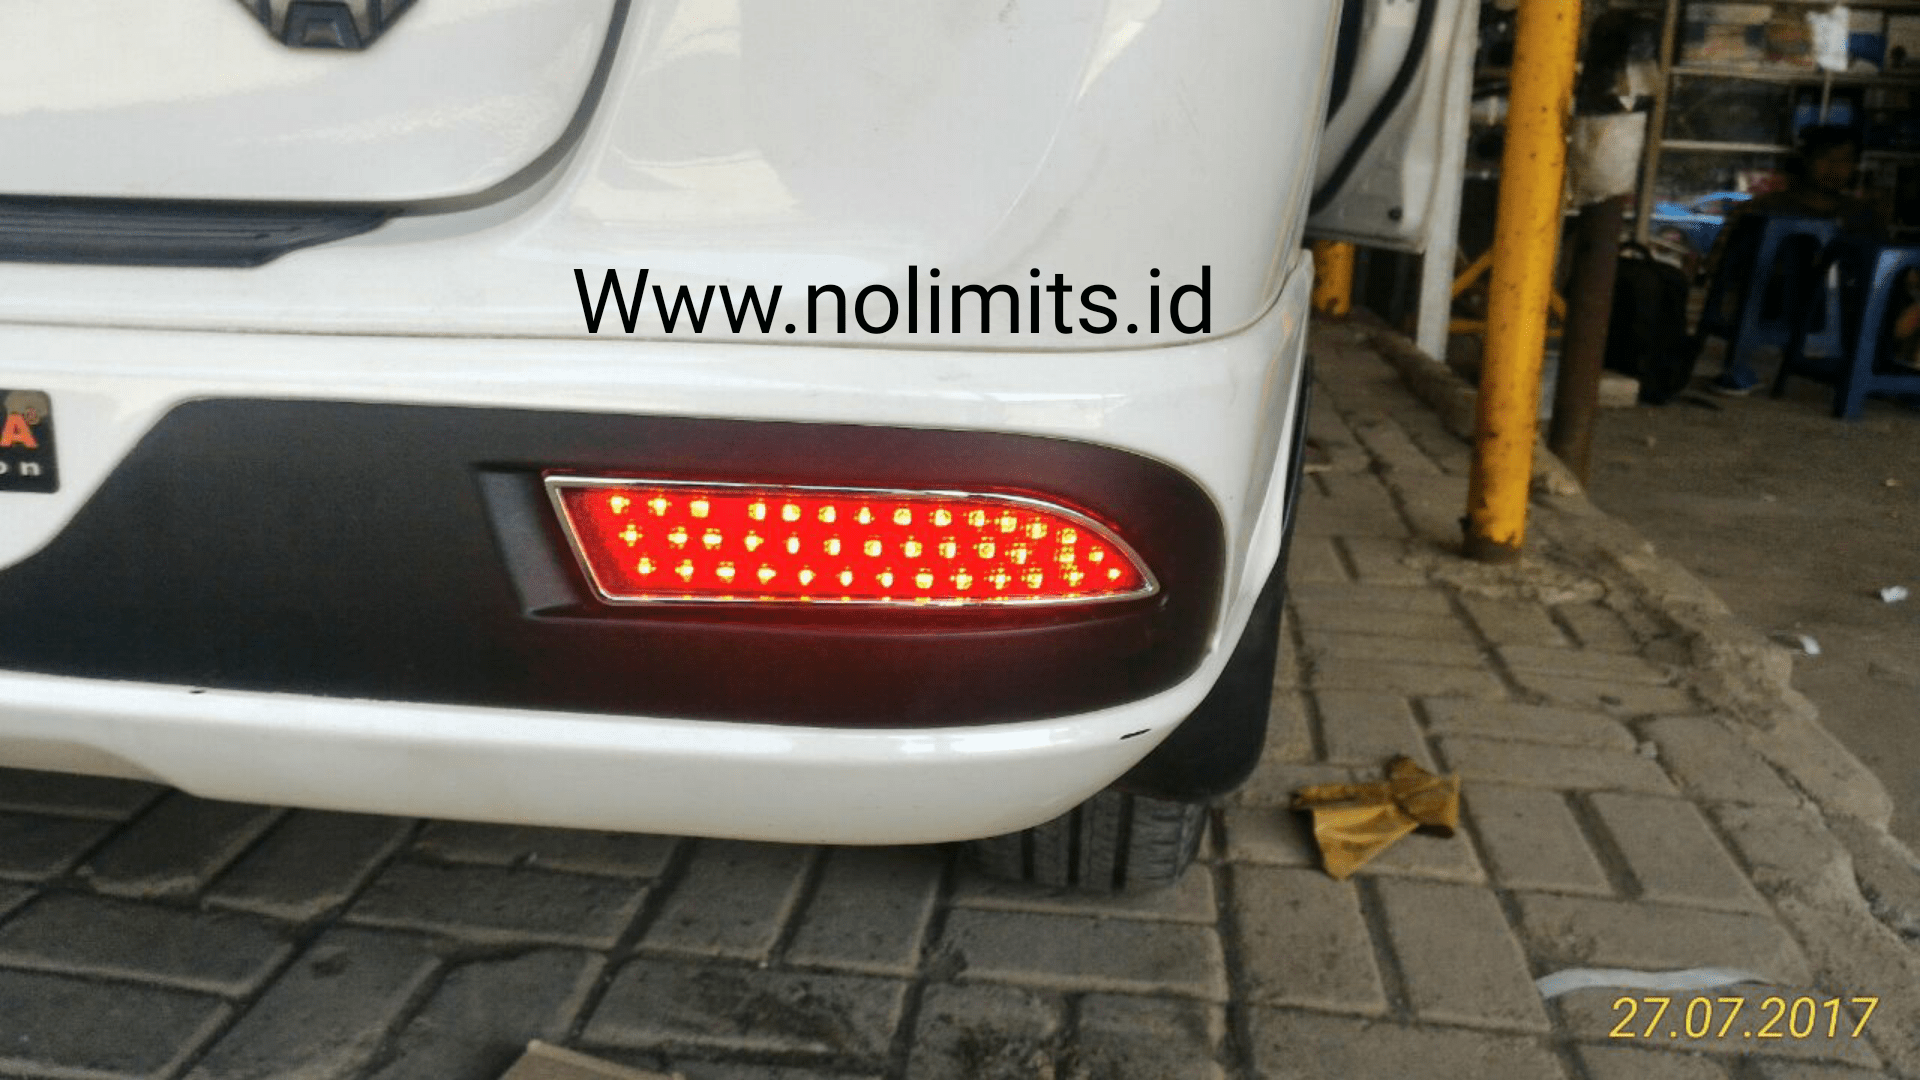 bemper grand new veloz sewa mobil avanza jogja led lampu reflektor bumper all no limits